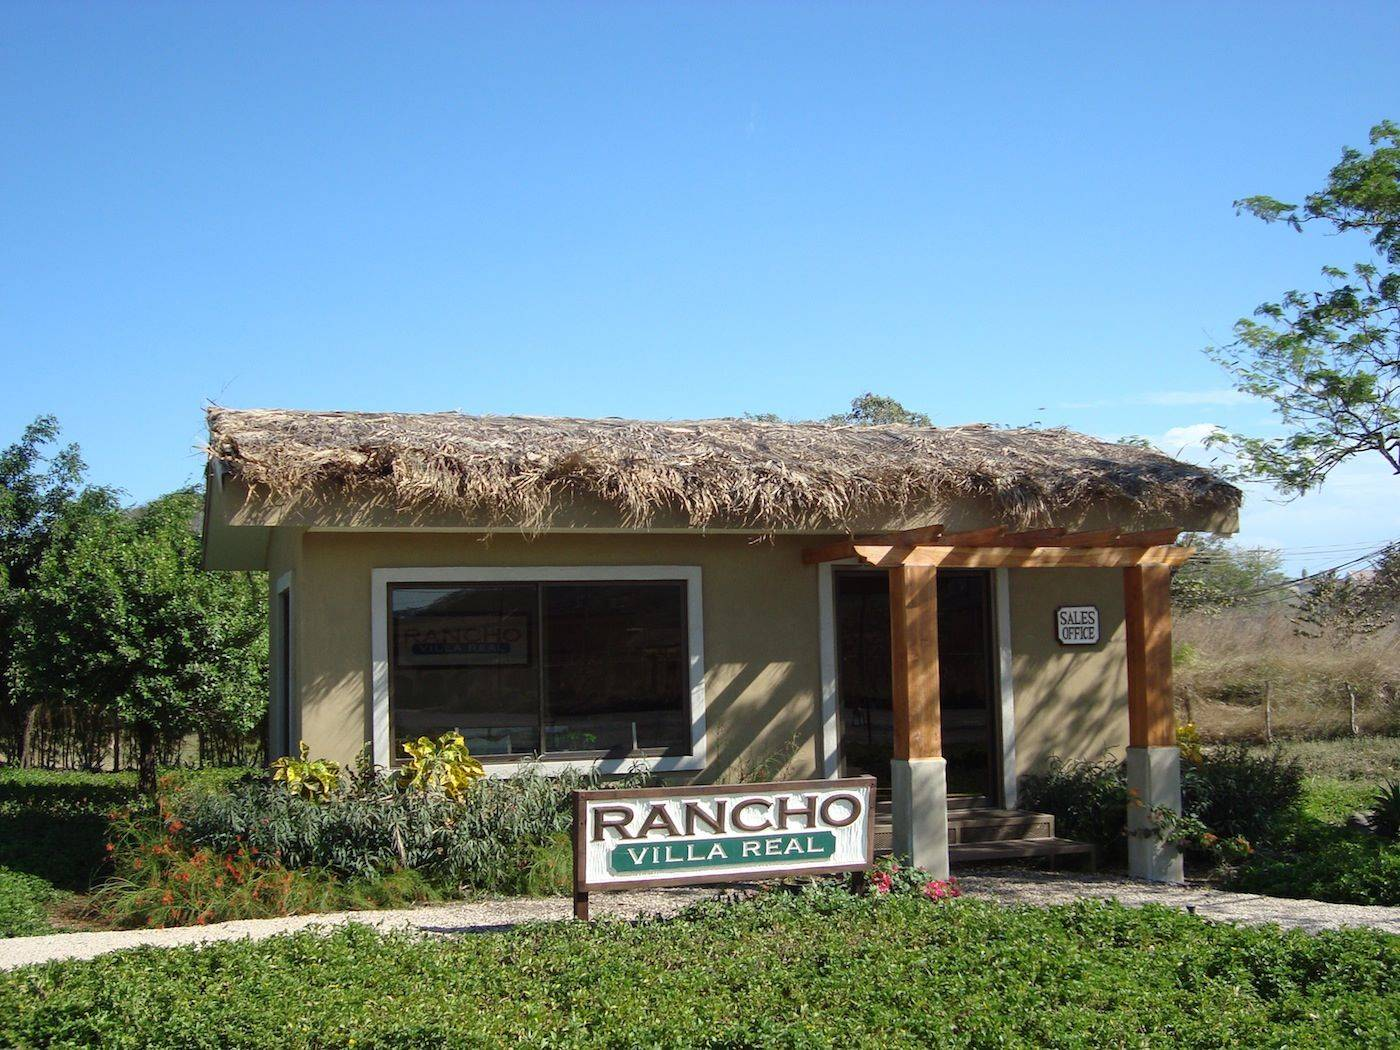 Rancho villa real costa rica real estate and rentals for Costa rica rental houses